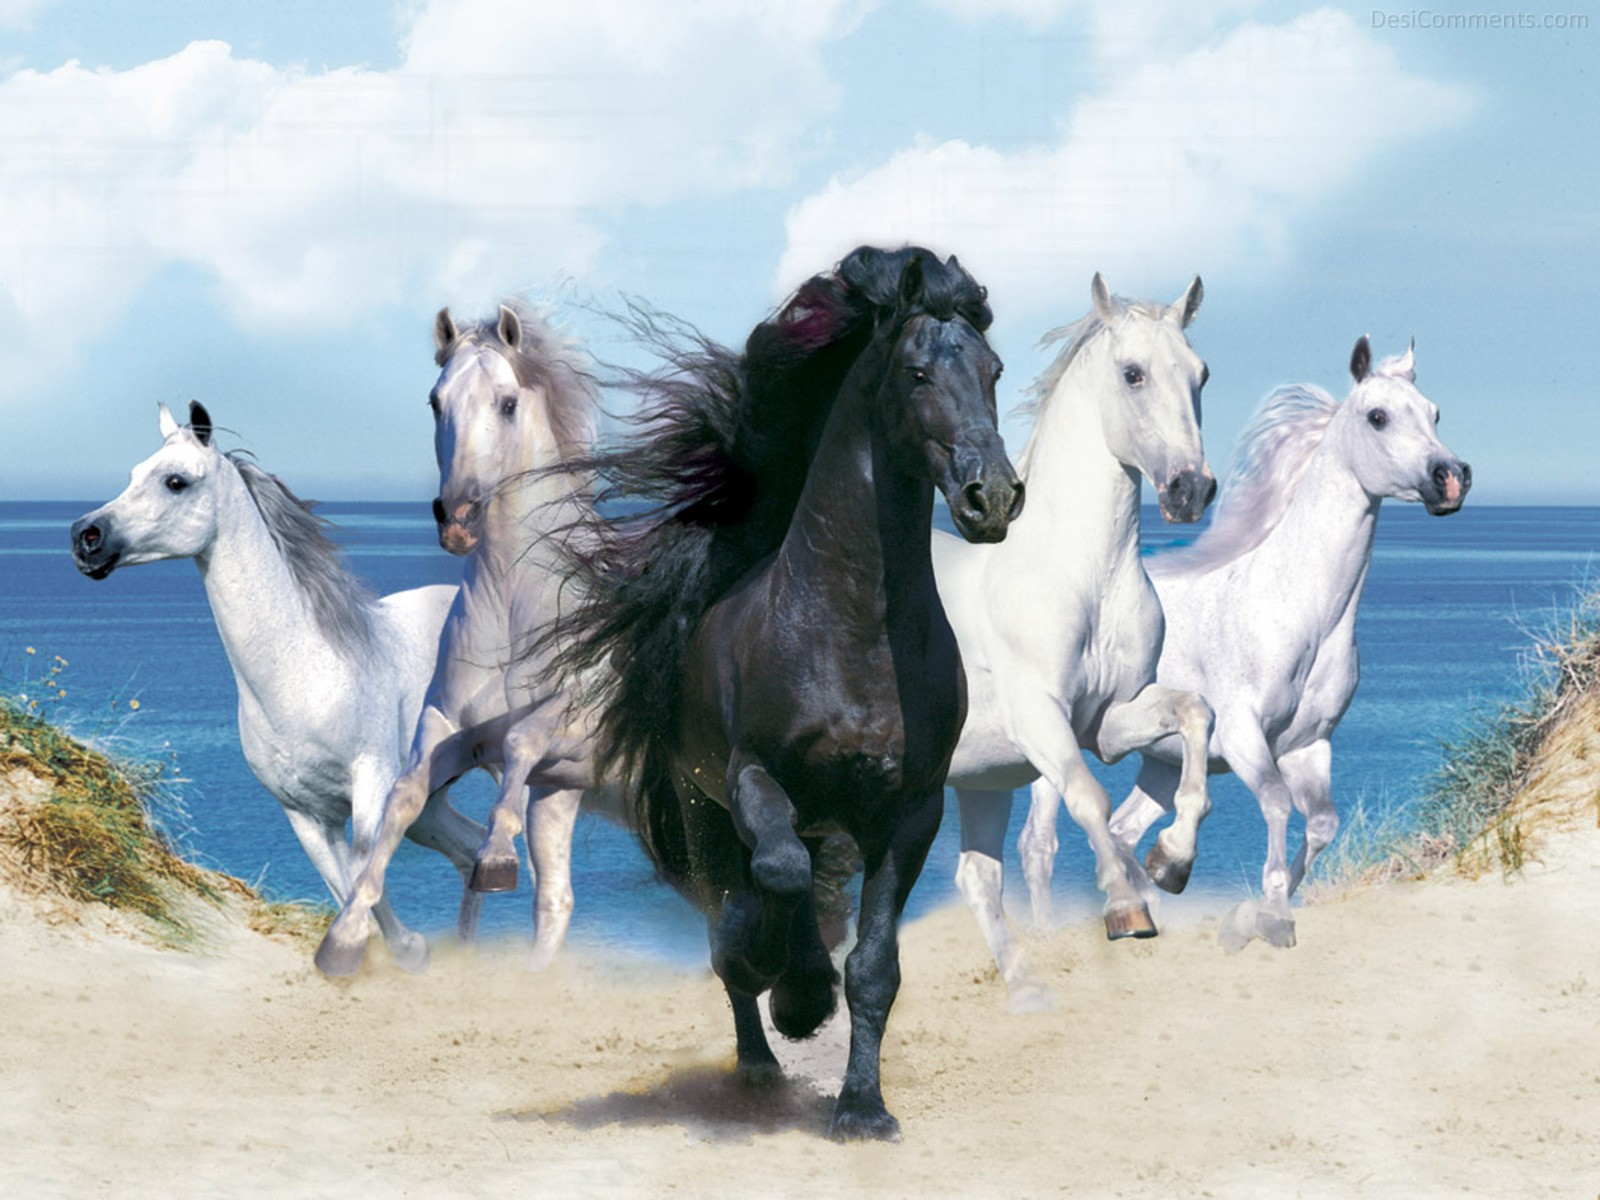 Black Horse With White Horses Desicomments Com